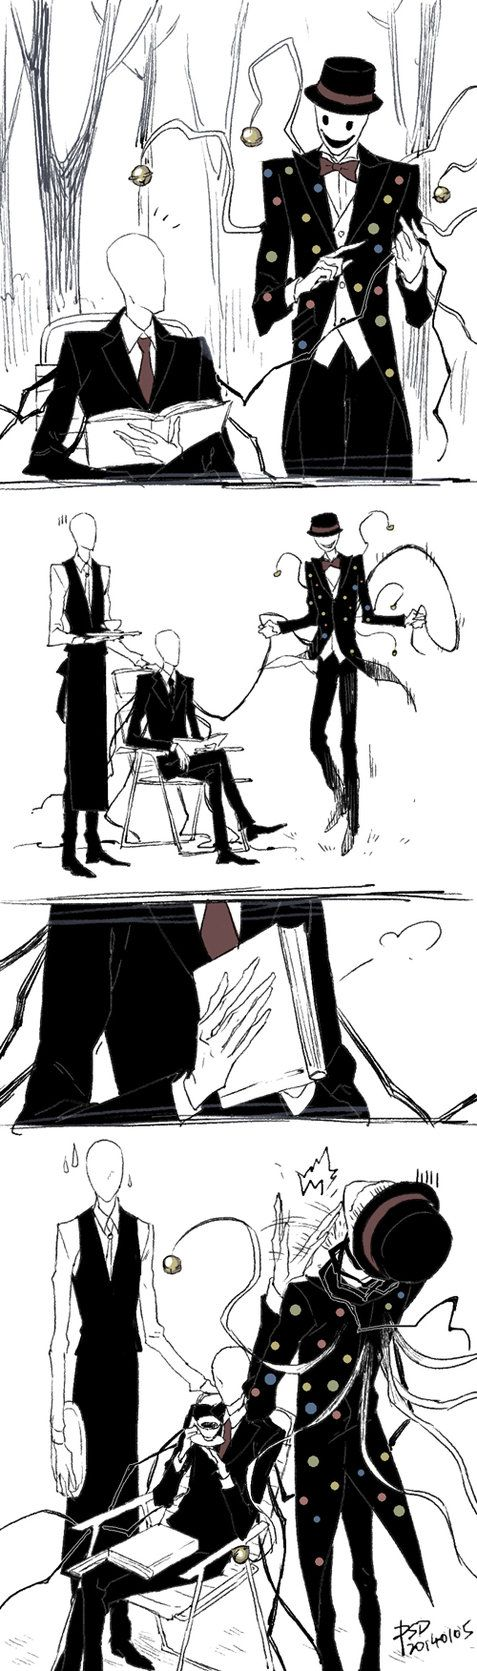 I love how Slender is casually drinking his tea while he's choking Splendy - kind of how my sister and I's relationship is ;) art by PSlenDy on deviantART